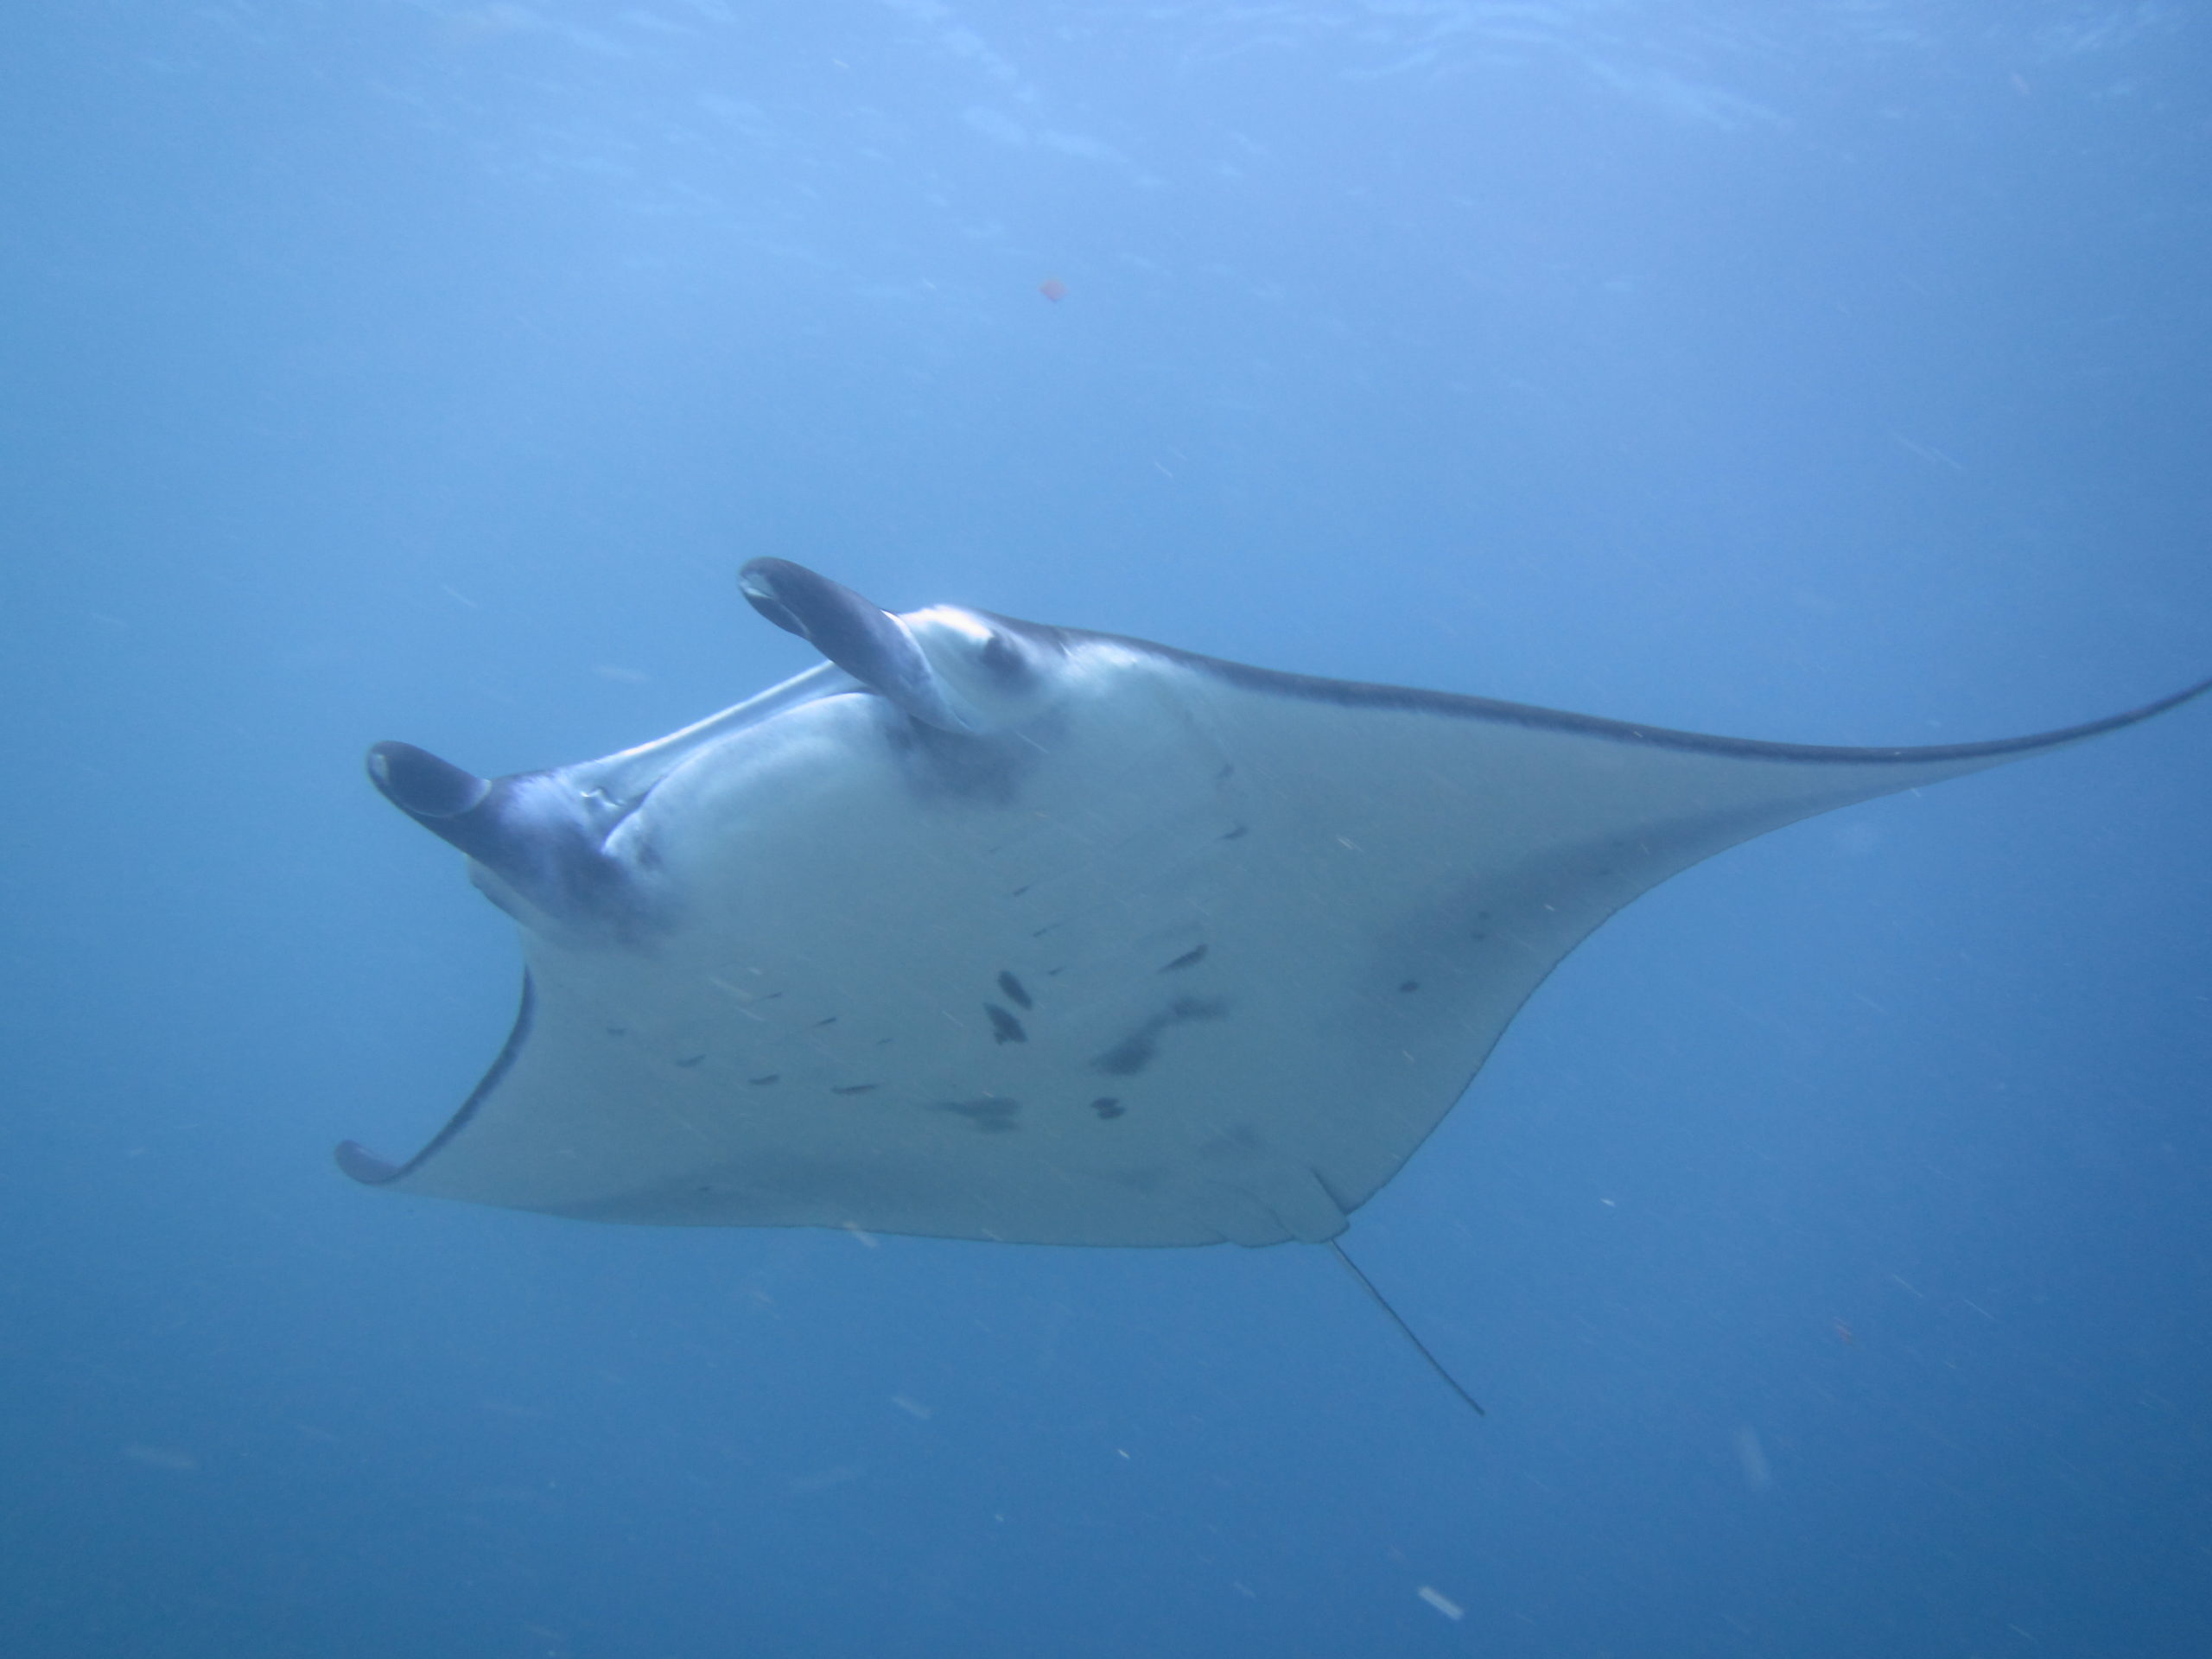 Reef mantas can grow up to 5 meters in length. Oceanic mantas can grow up to 9 meters and weigh up to 2 tonnes.